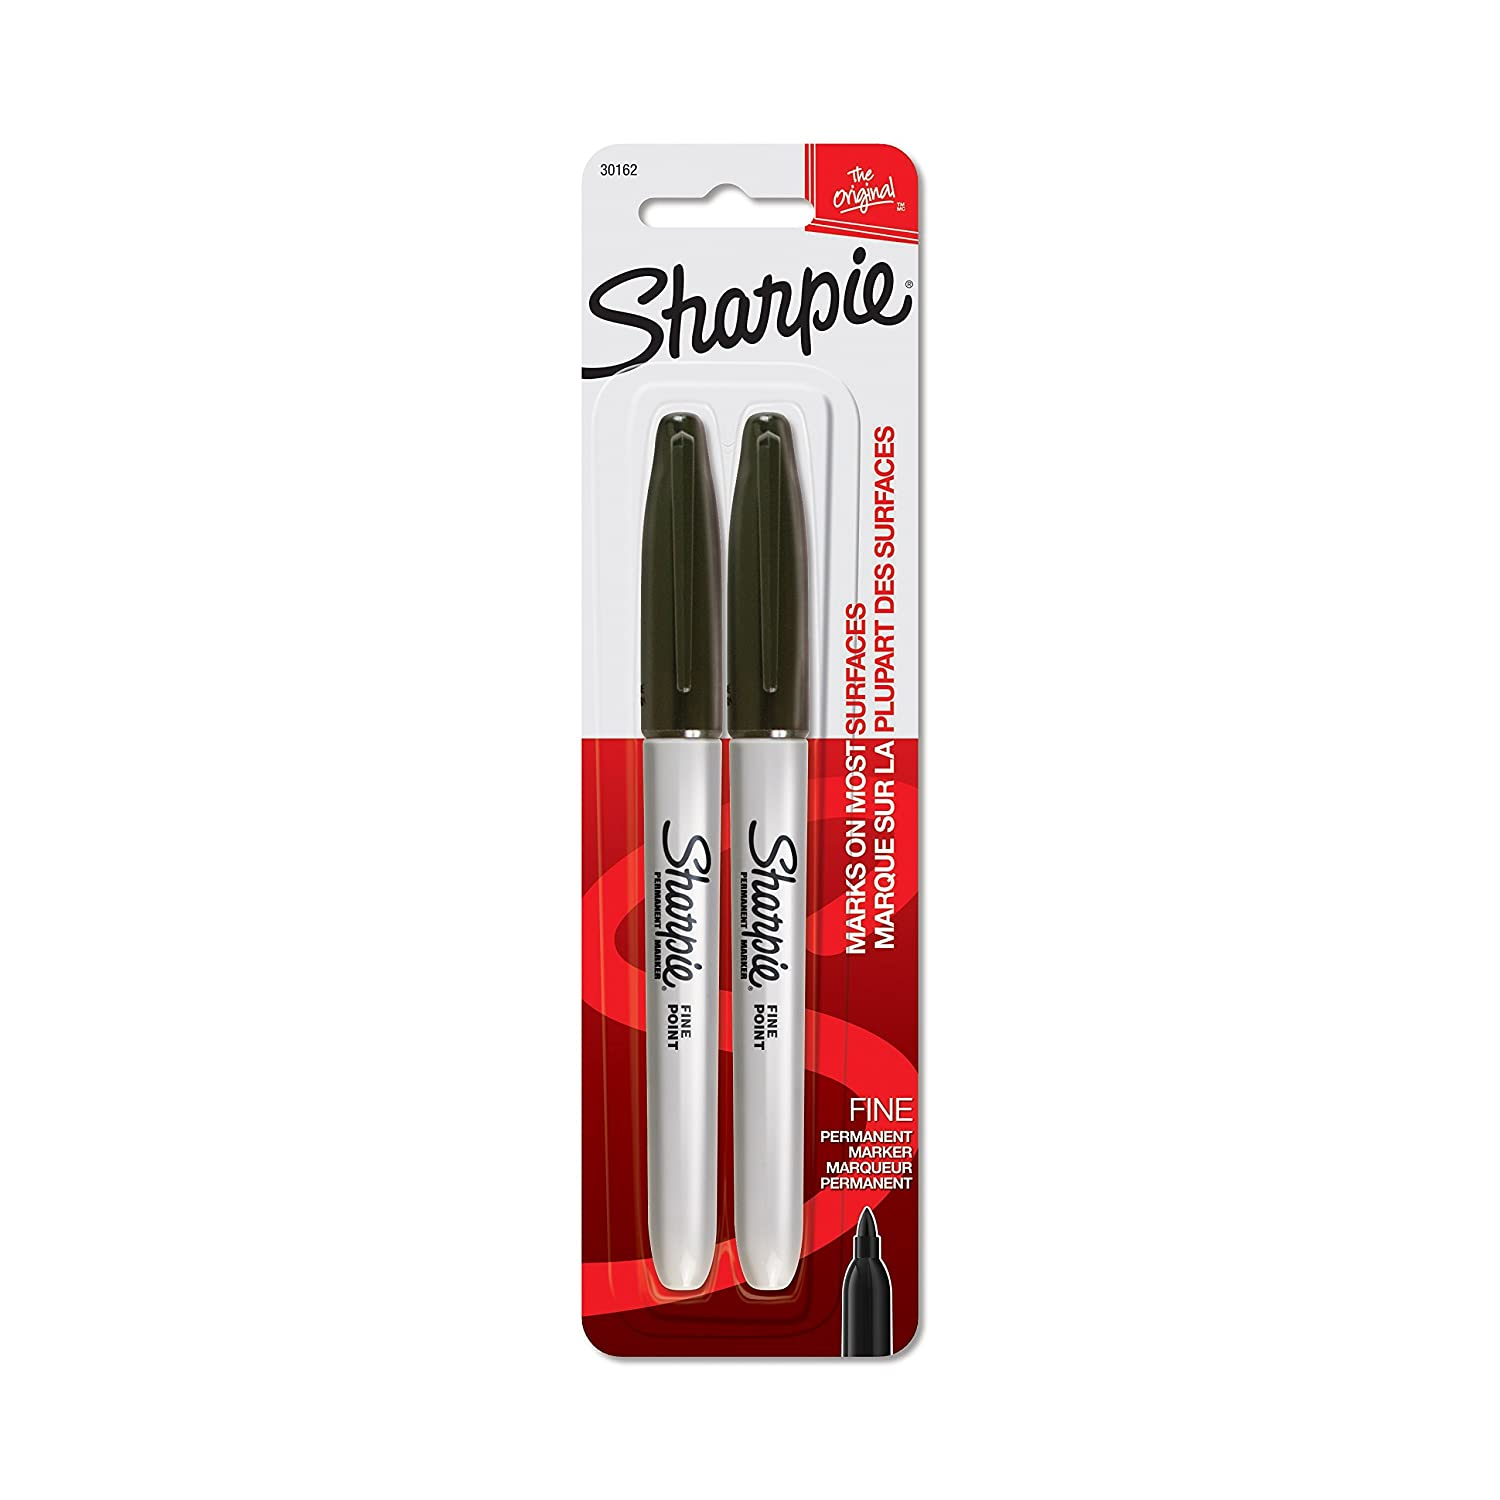 Sharpie Permanent Markers, Fine Point, Black, 2-Count